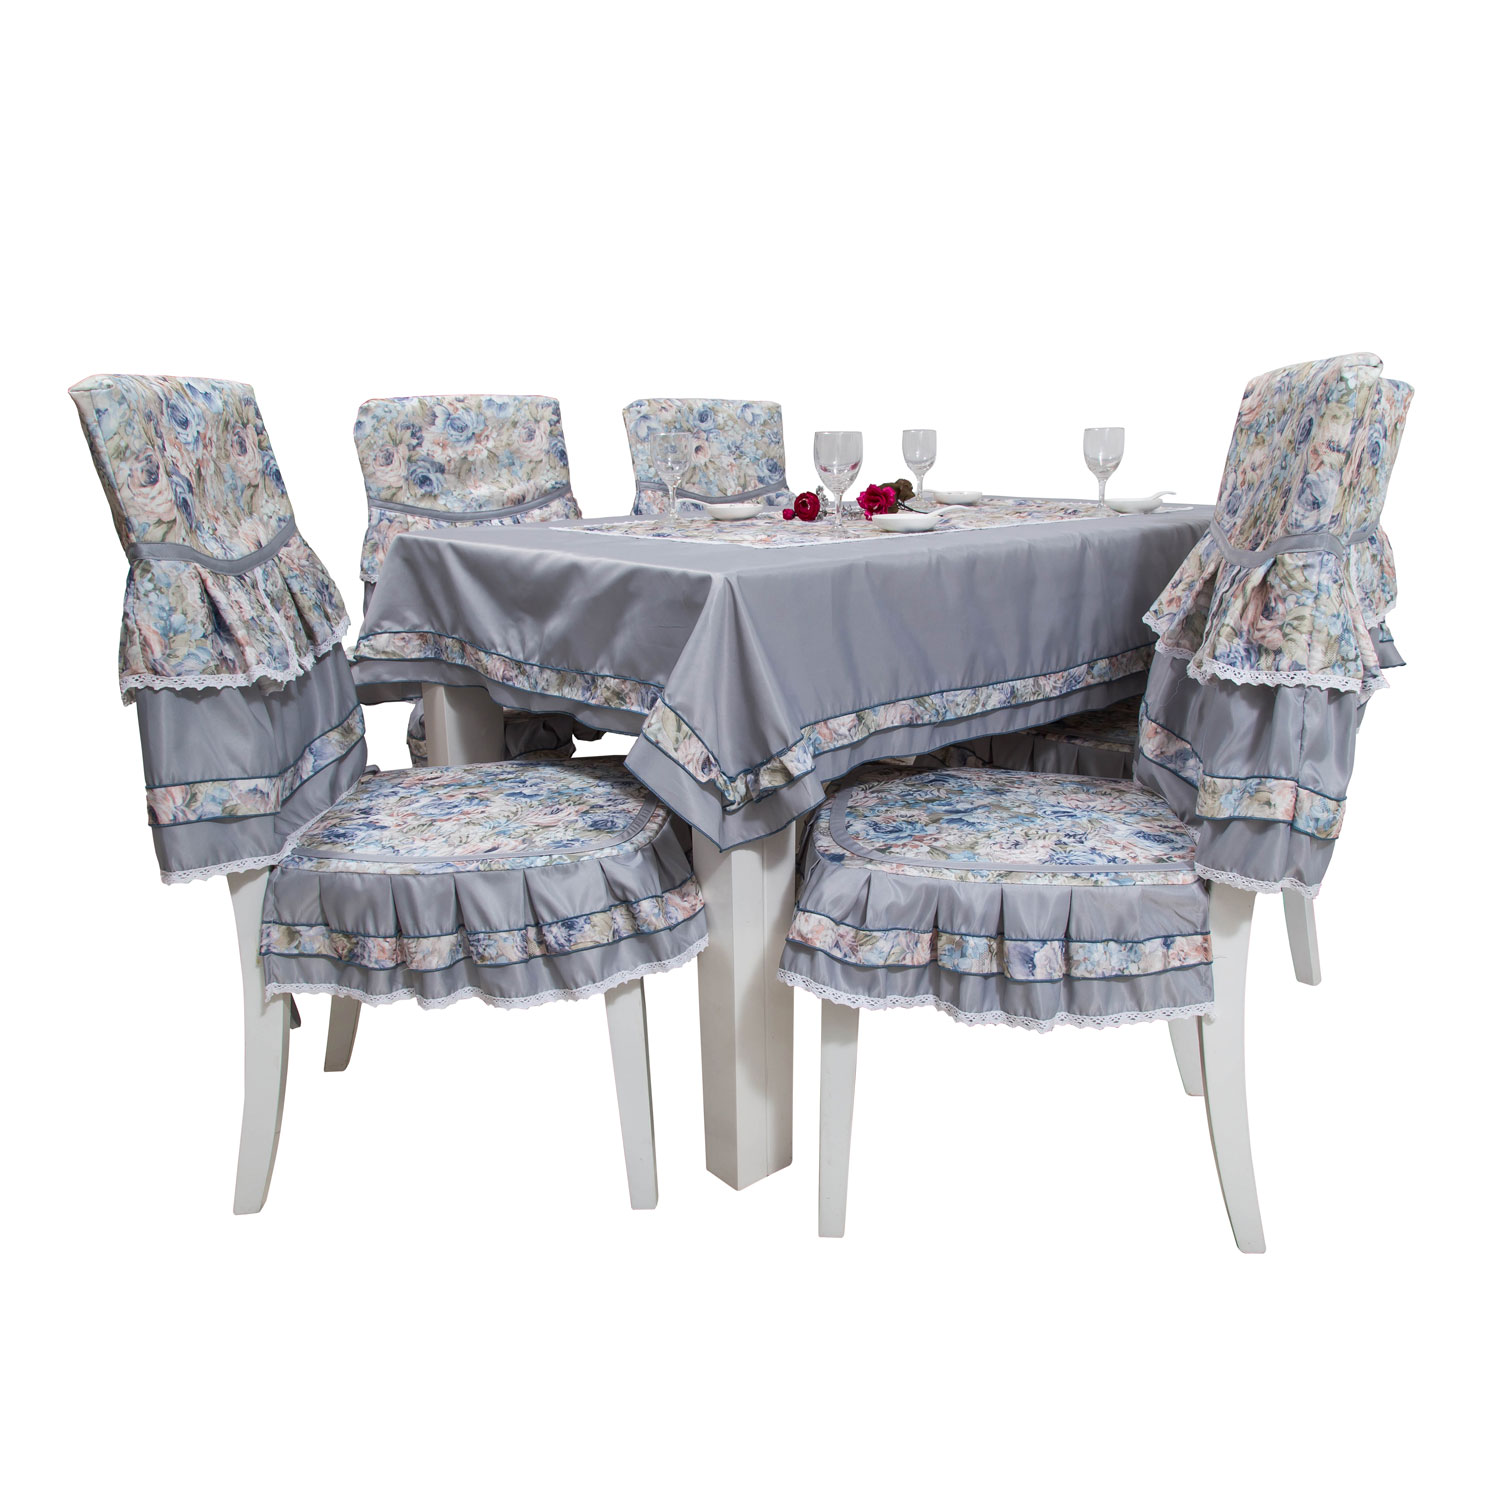 Xin Instrument Tables And Chairs Fabric Dining Chair Cushion Pad Coverings  Suits Coffee Table Cloth Table